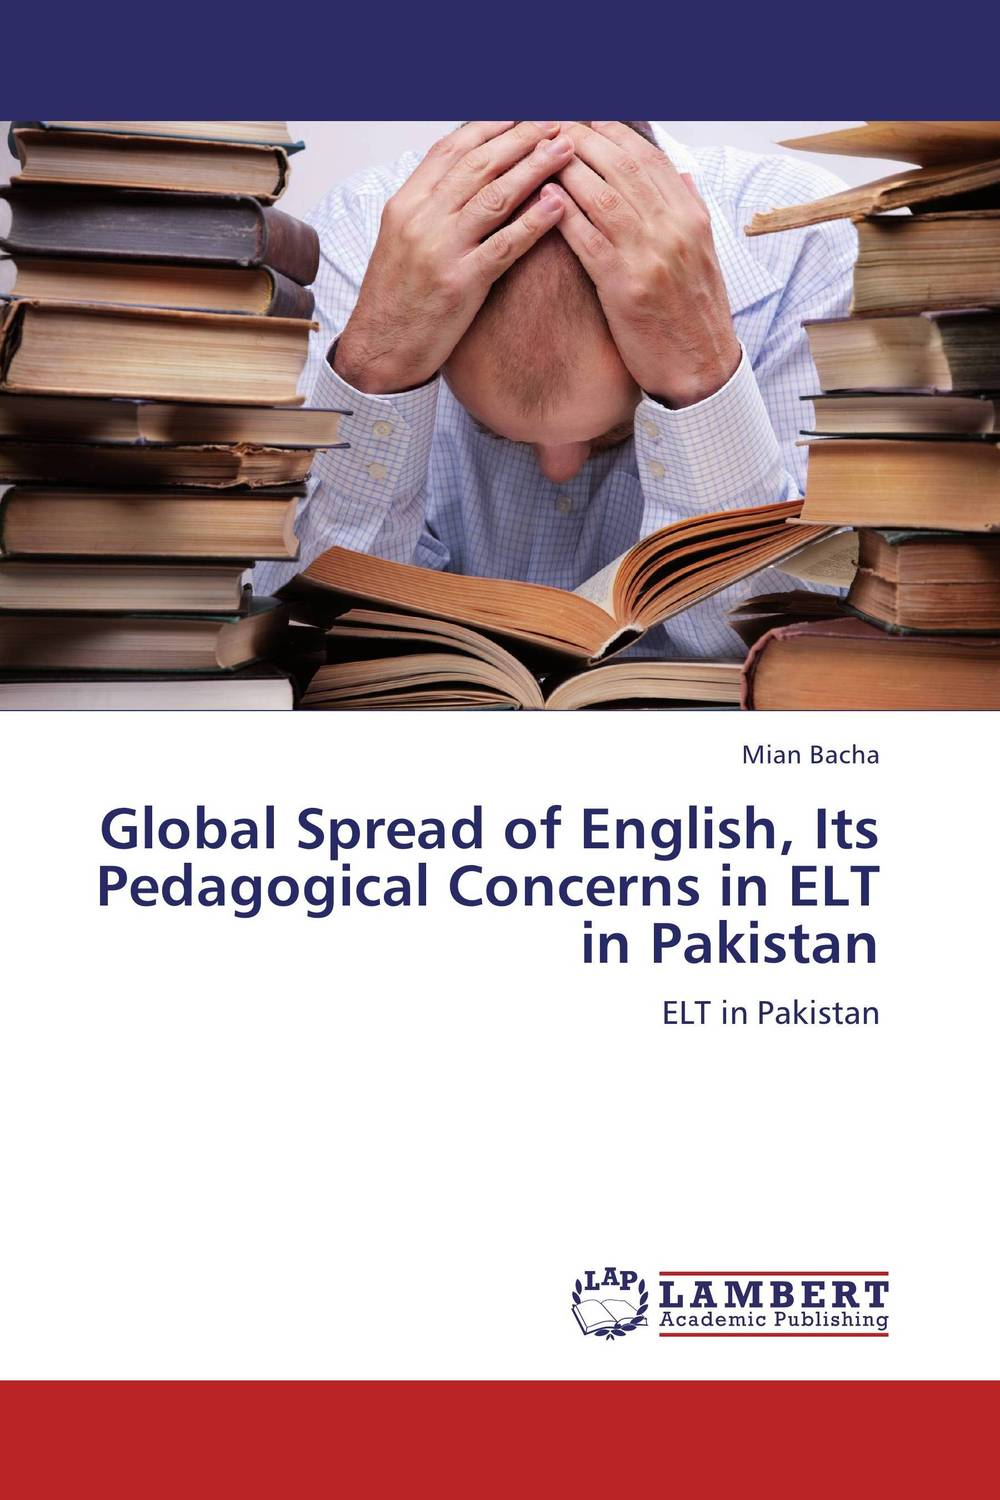 Global Spread of English, Its Pedagogical Concerns in ELT in Pakistan rise and spread of english in india